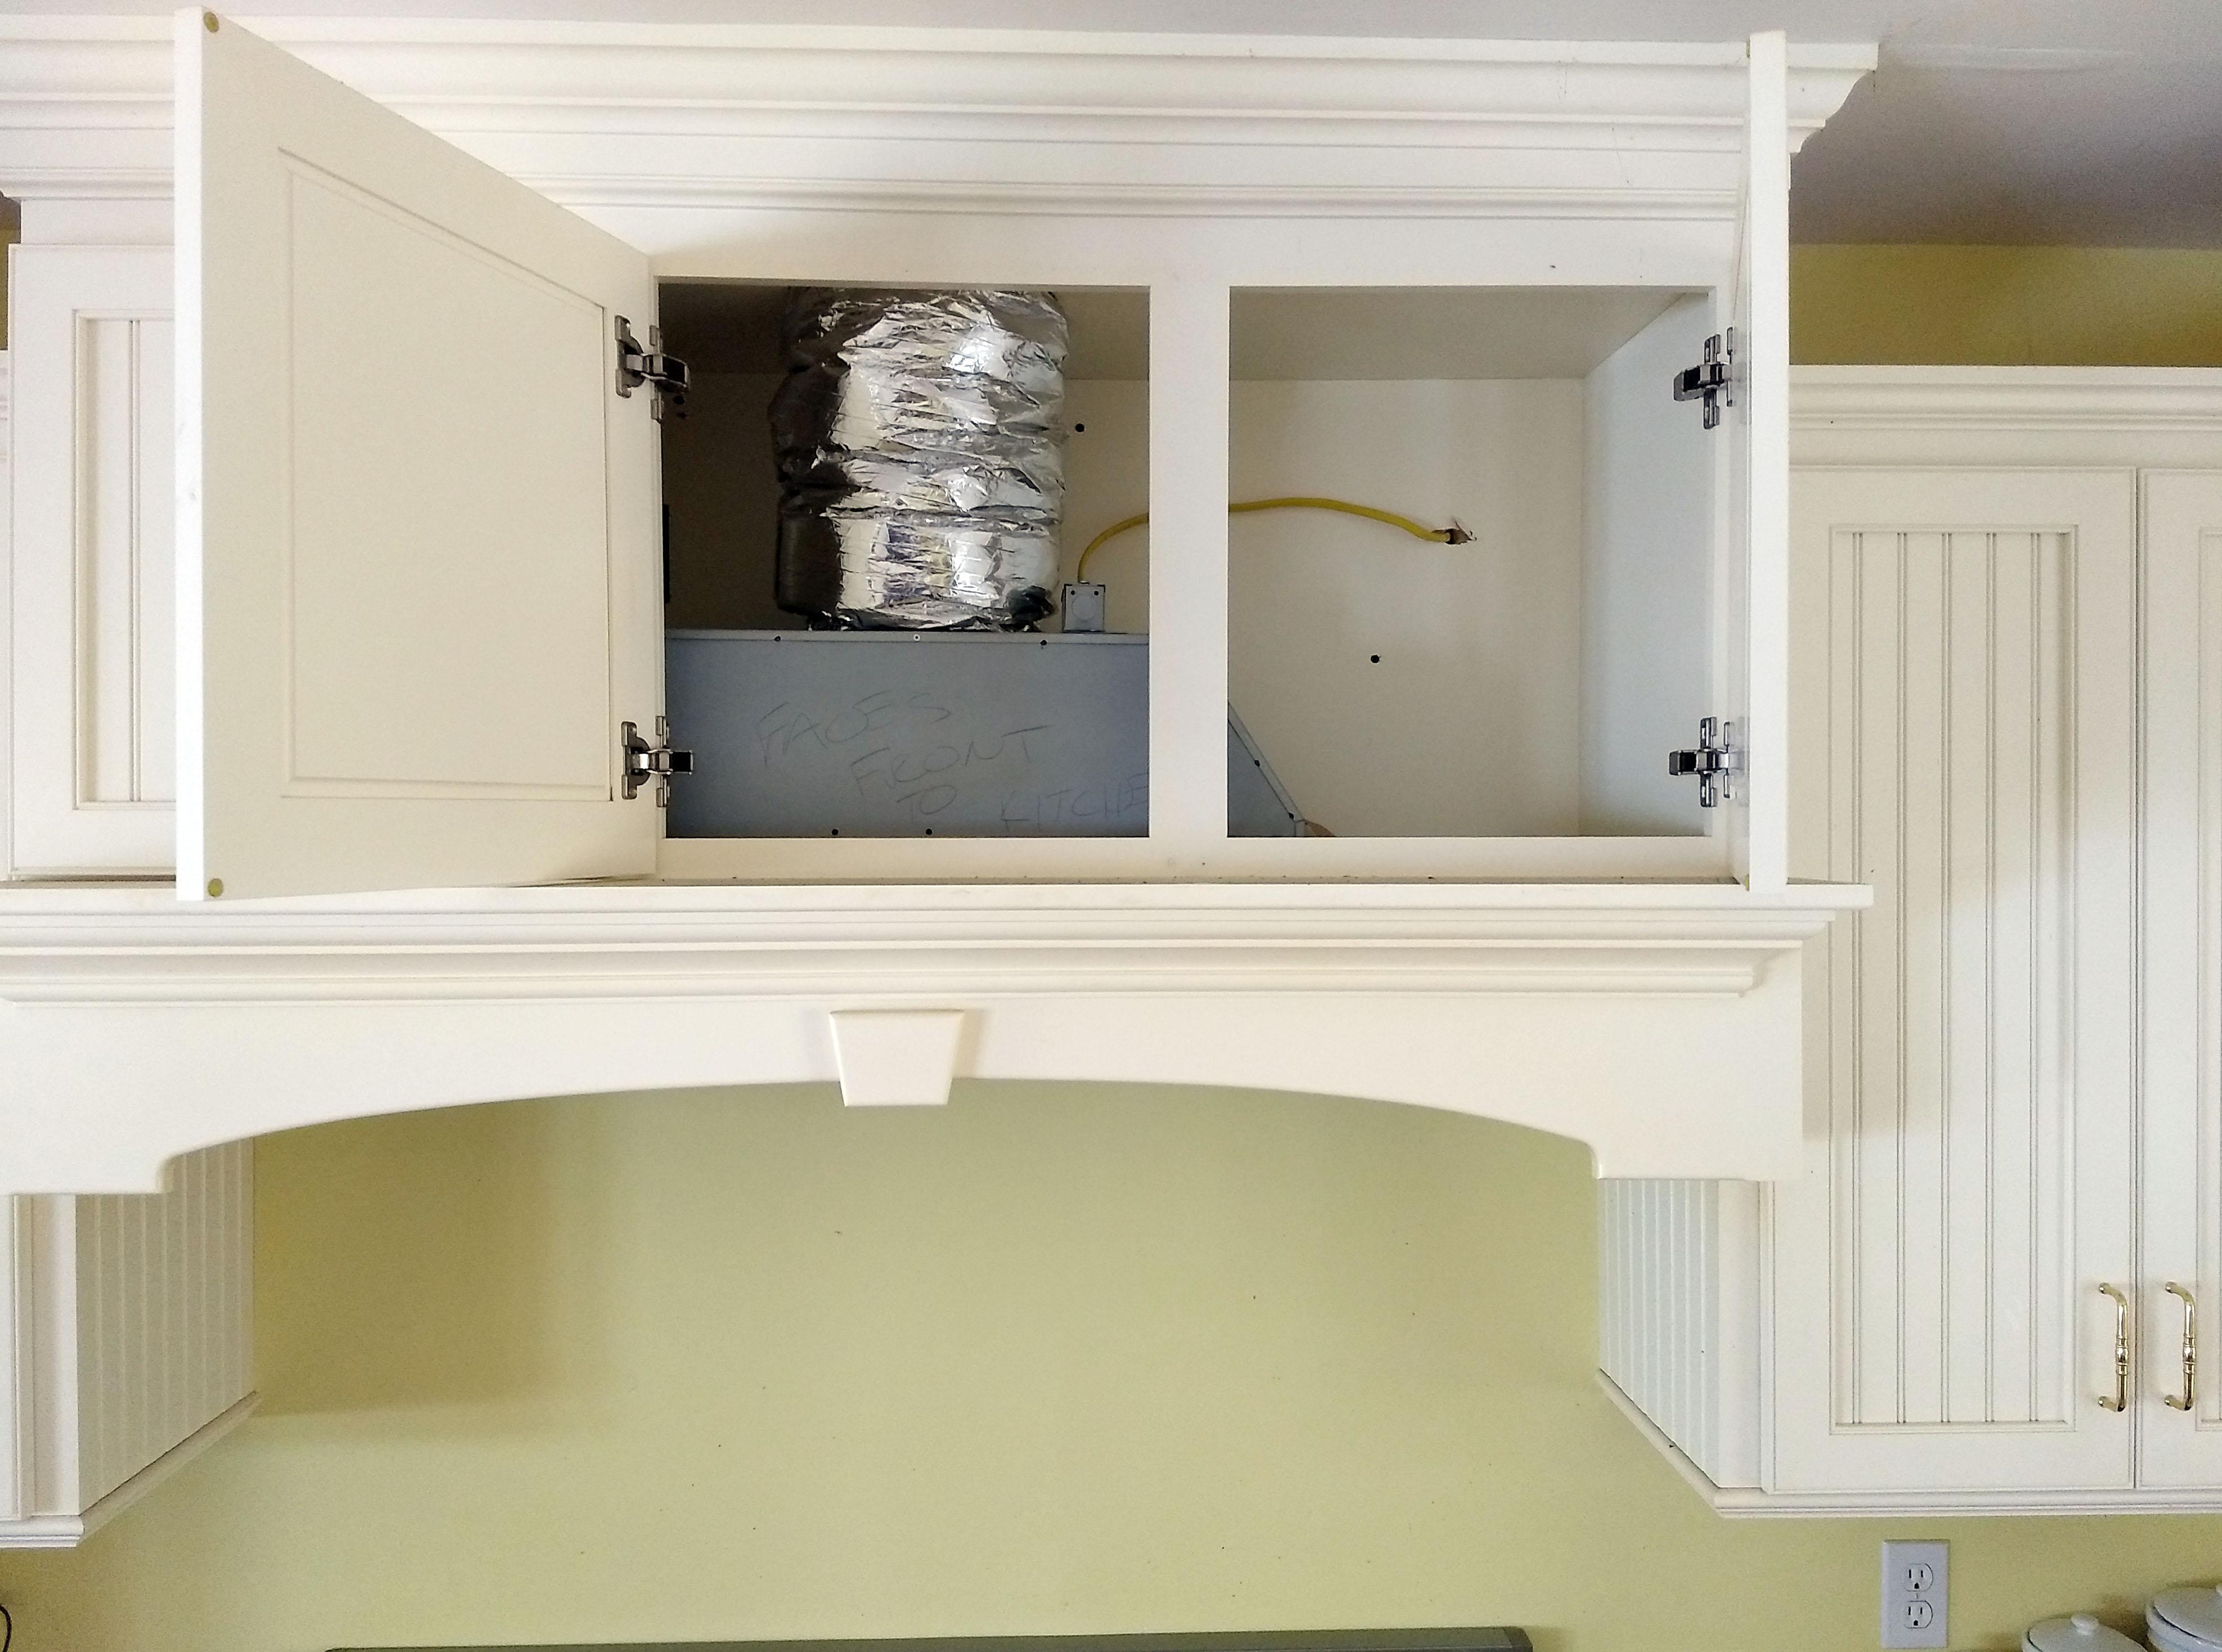 Ask The Builder: When installing kitchen exhaust fan, beware of fire ...